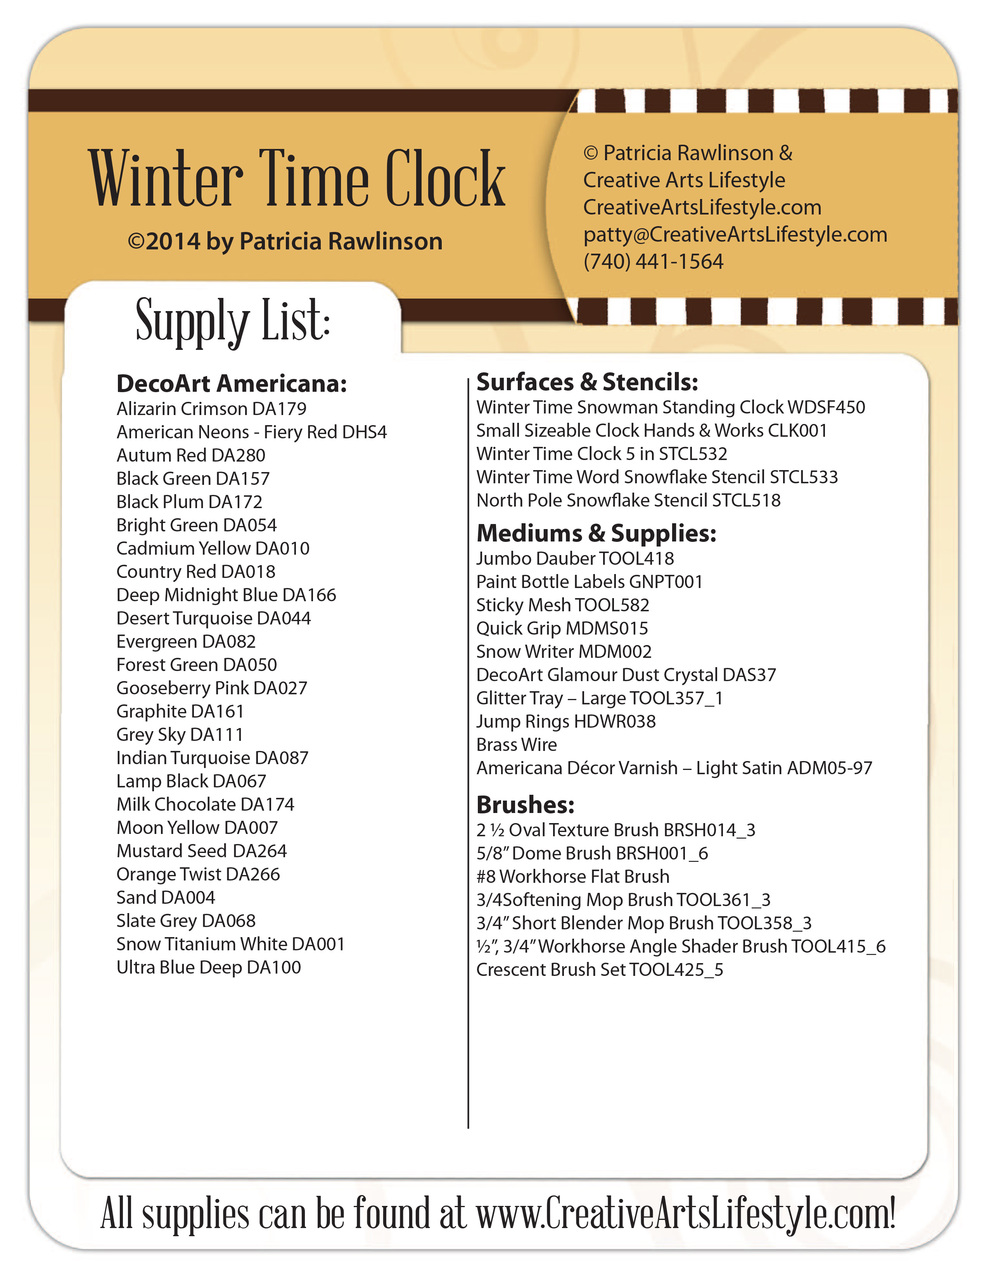 Winter Time Snowman Standing Clock E-Packet - Patricia Rawlinson